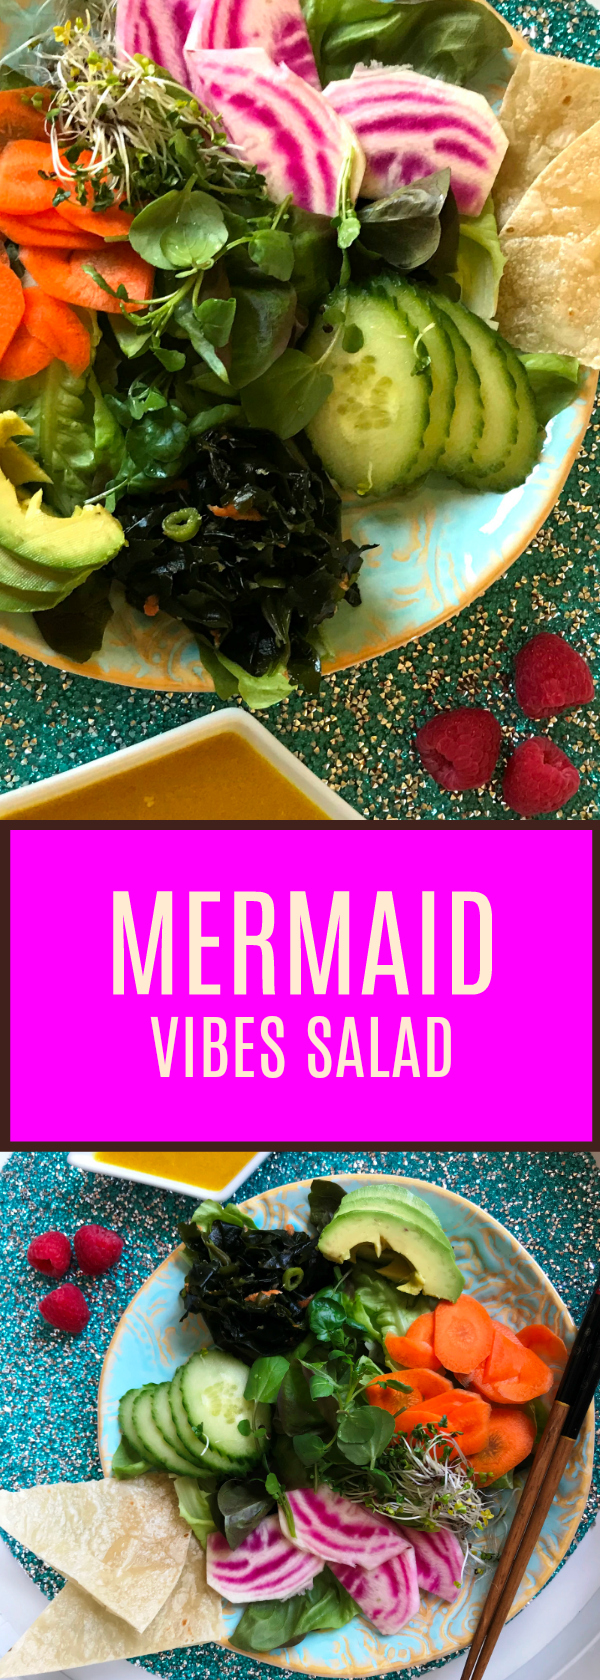 Mermaid Vibes Salad - For Your Inner Mermaid! Delicious Light Salad that is Gluten and Soy Free. Spa Quality and Healthy!